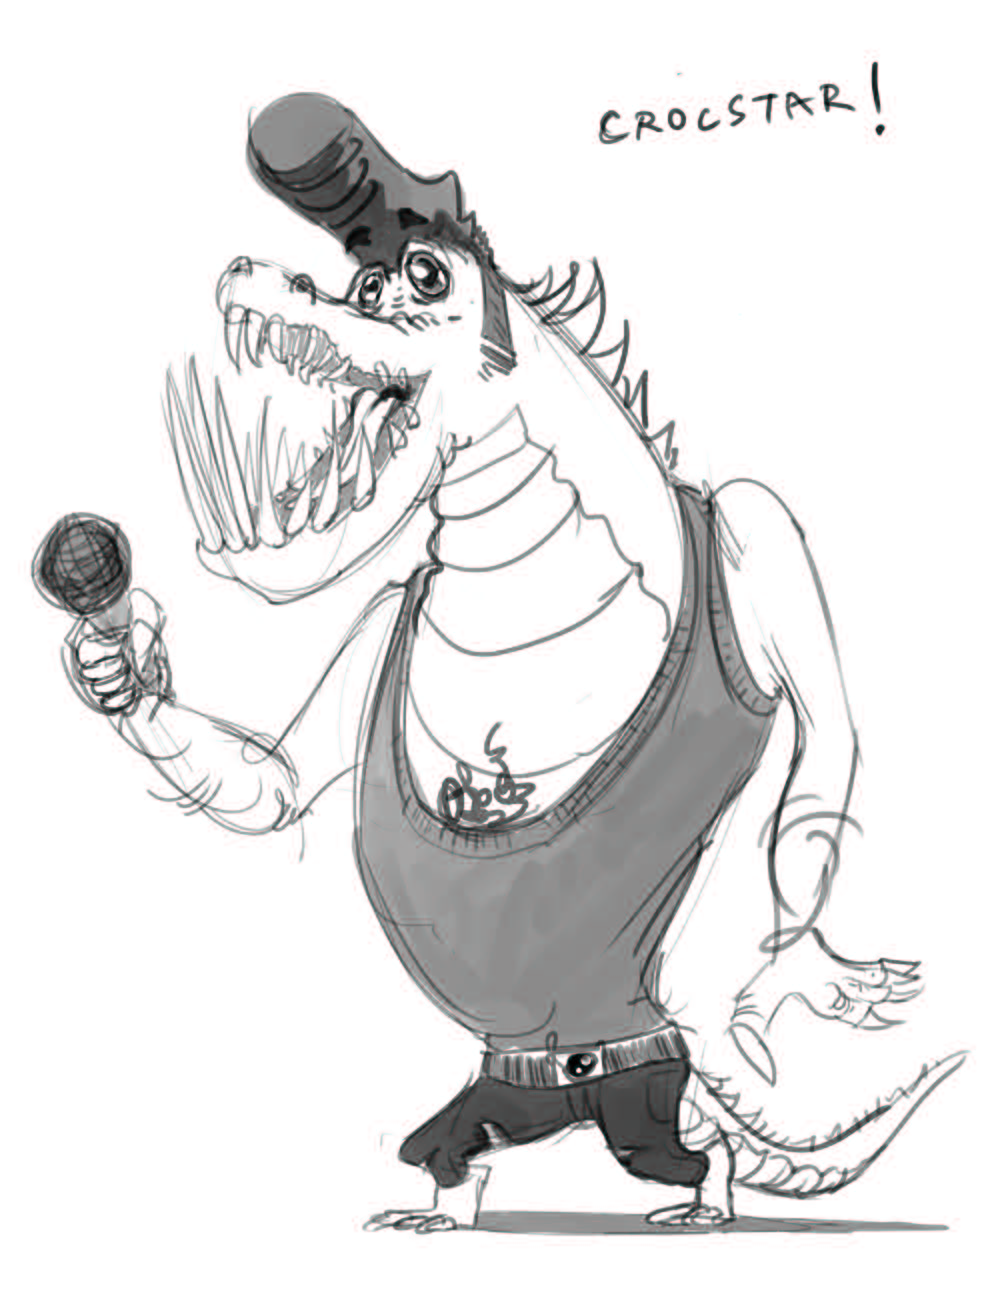 Character Design: Crockstar A pretty hip gator with the voice of an angel. Just look at that smle!